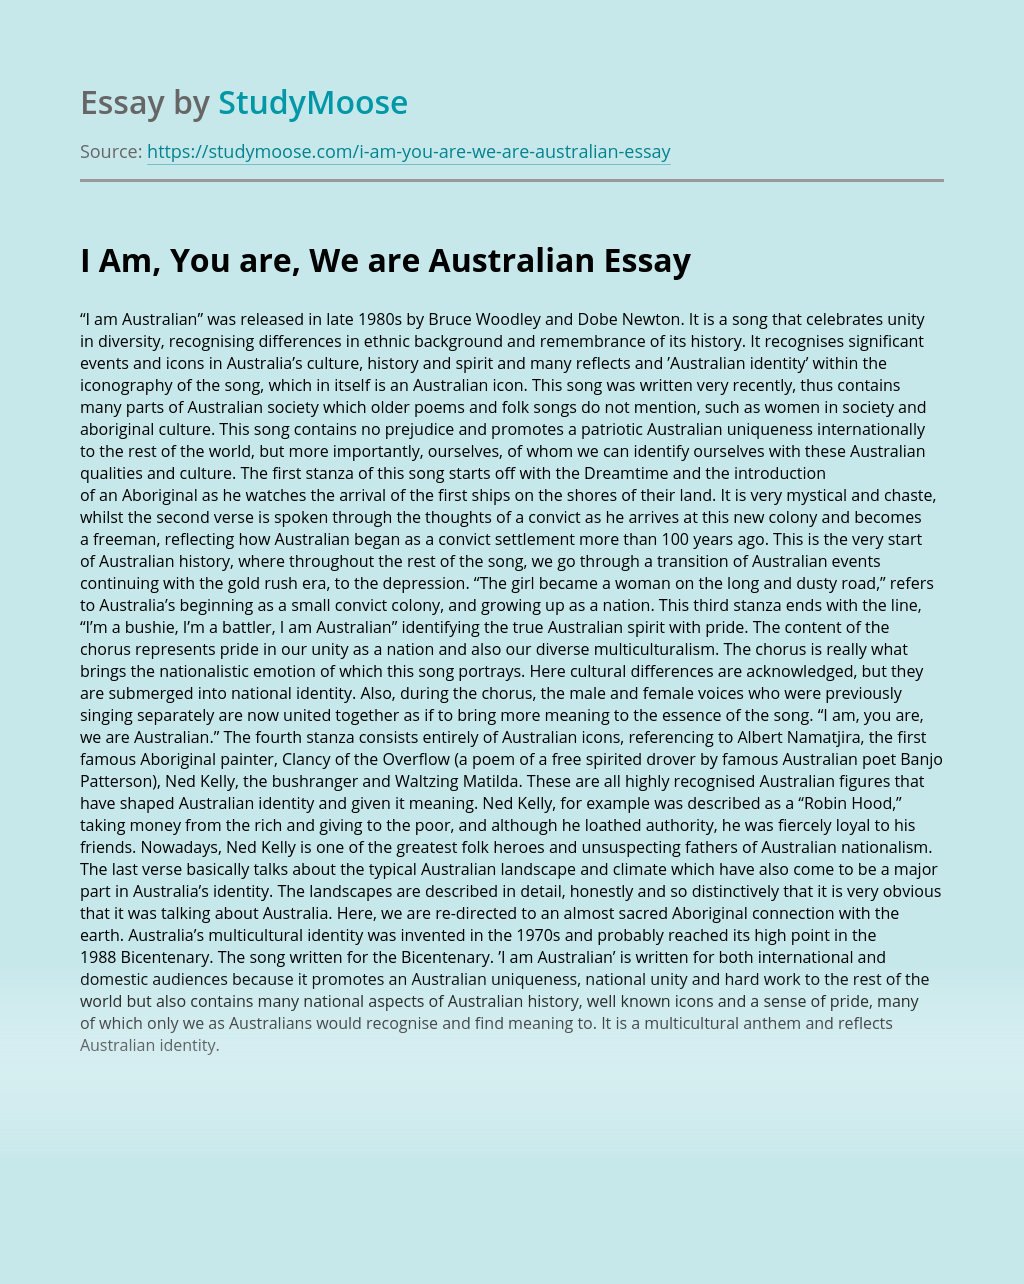 I Am, You are, We are Australian